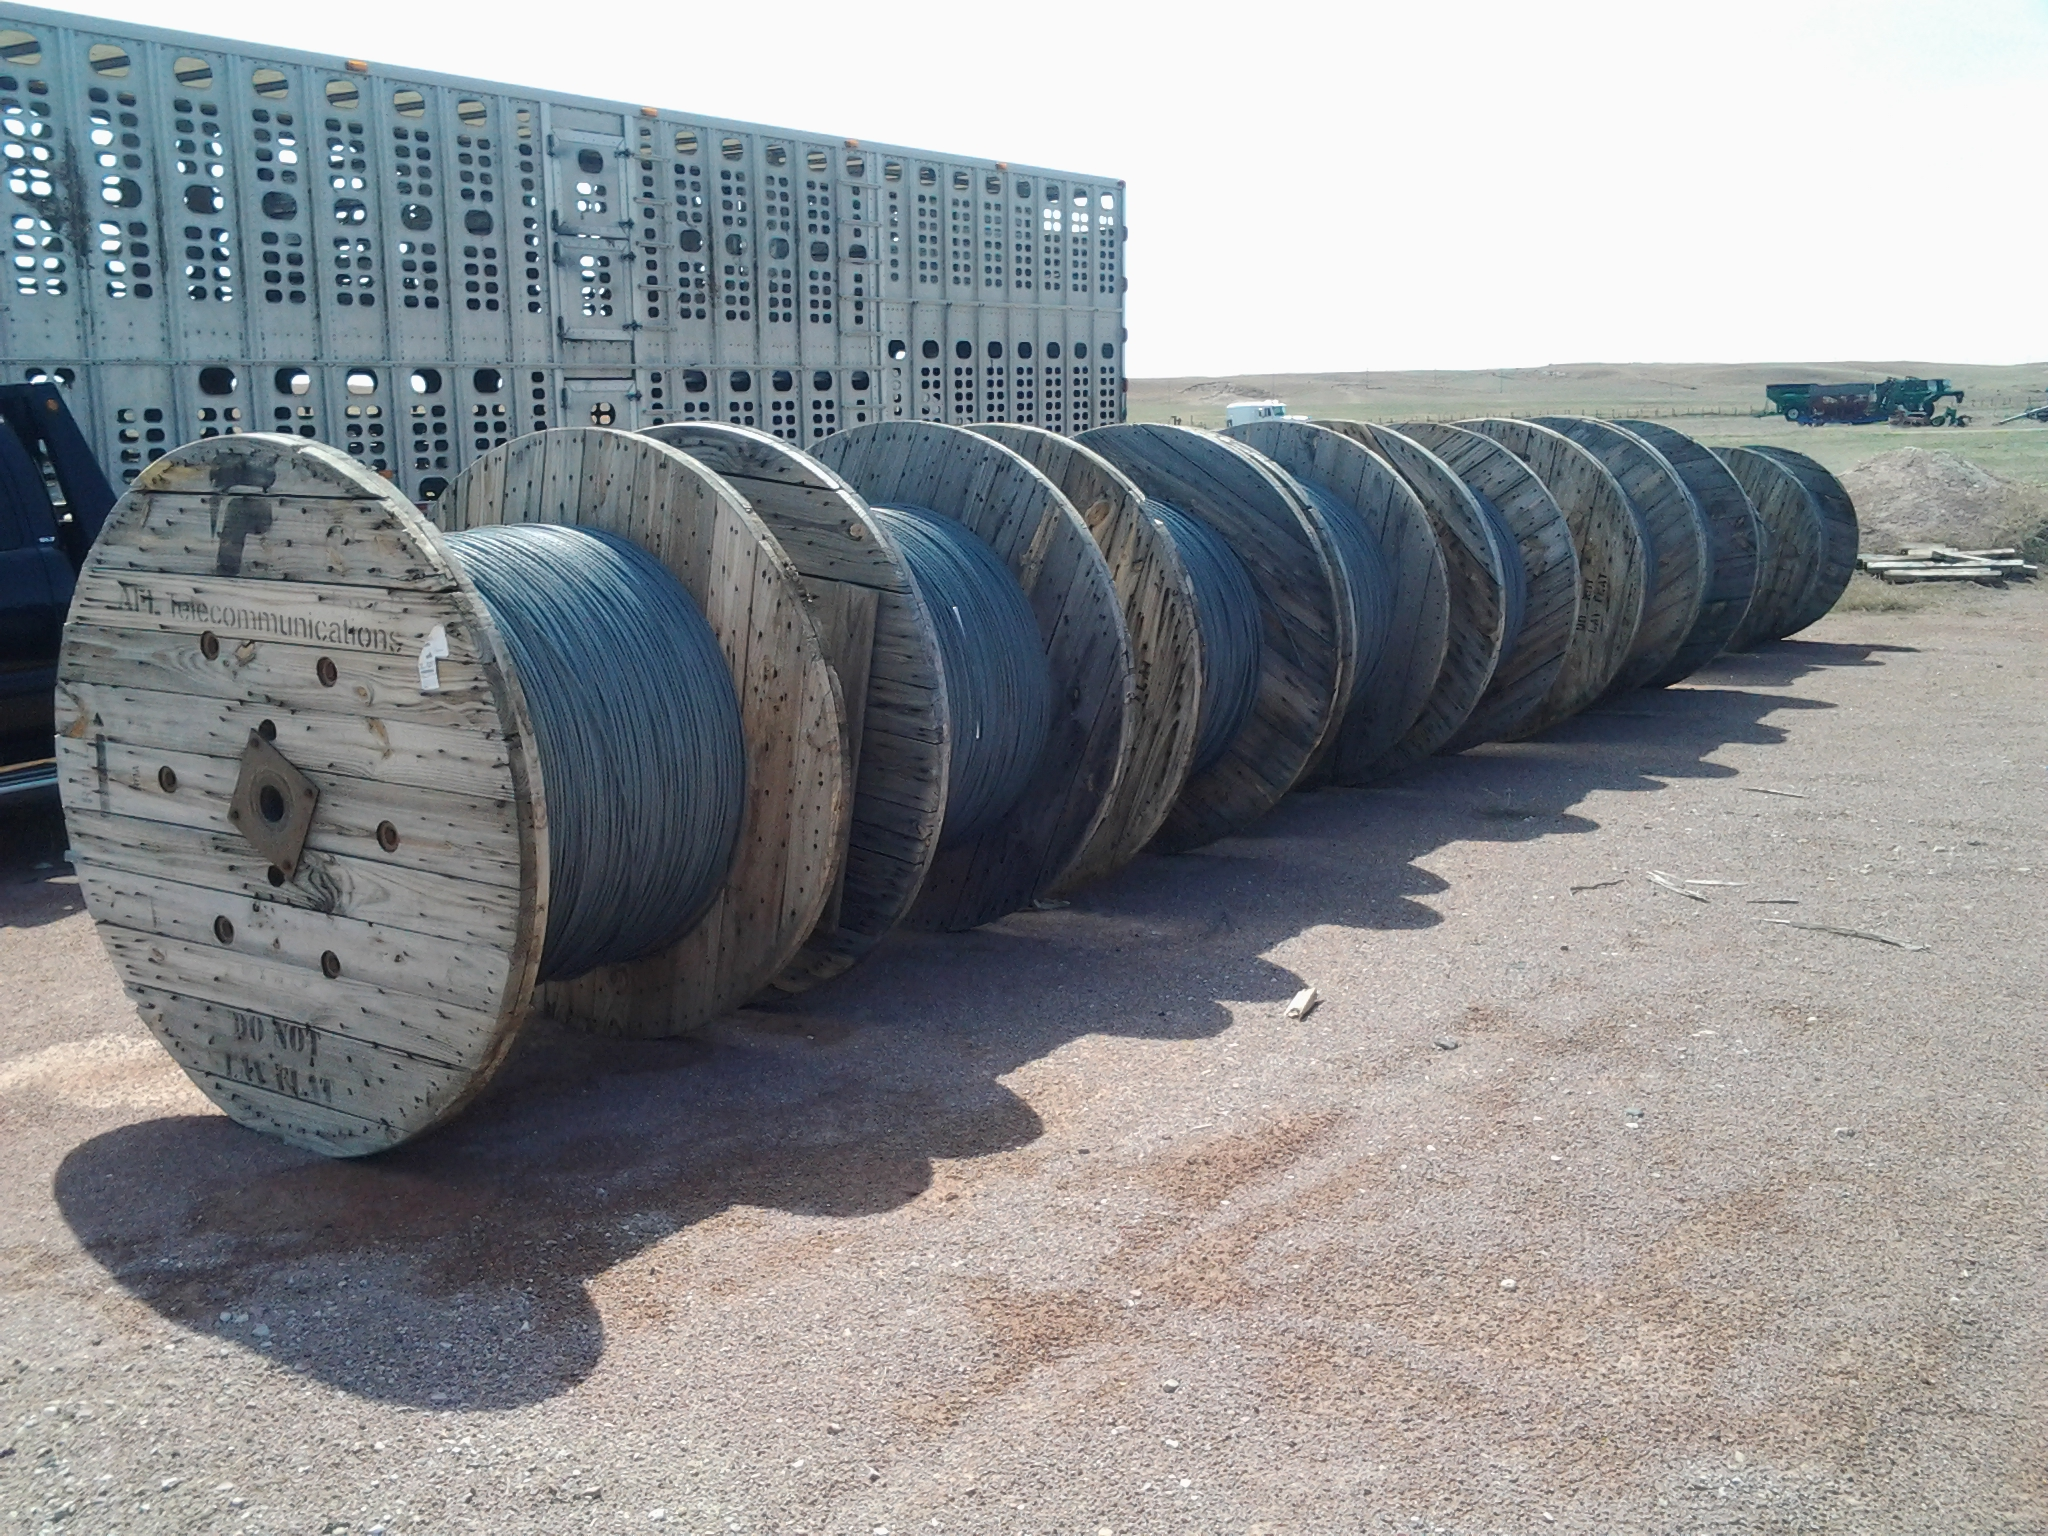 Getting your cable on wooden spools is much easier than working with open centered rolls.